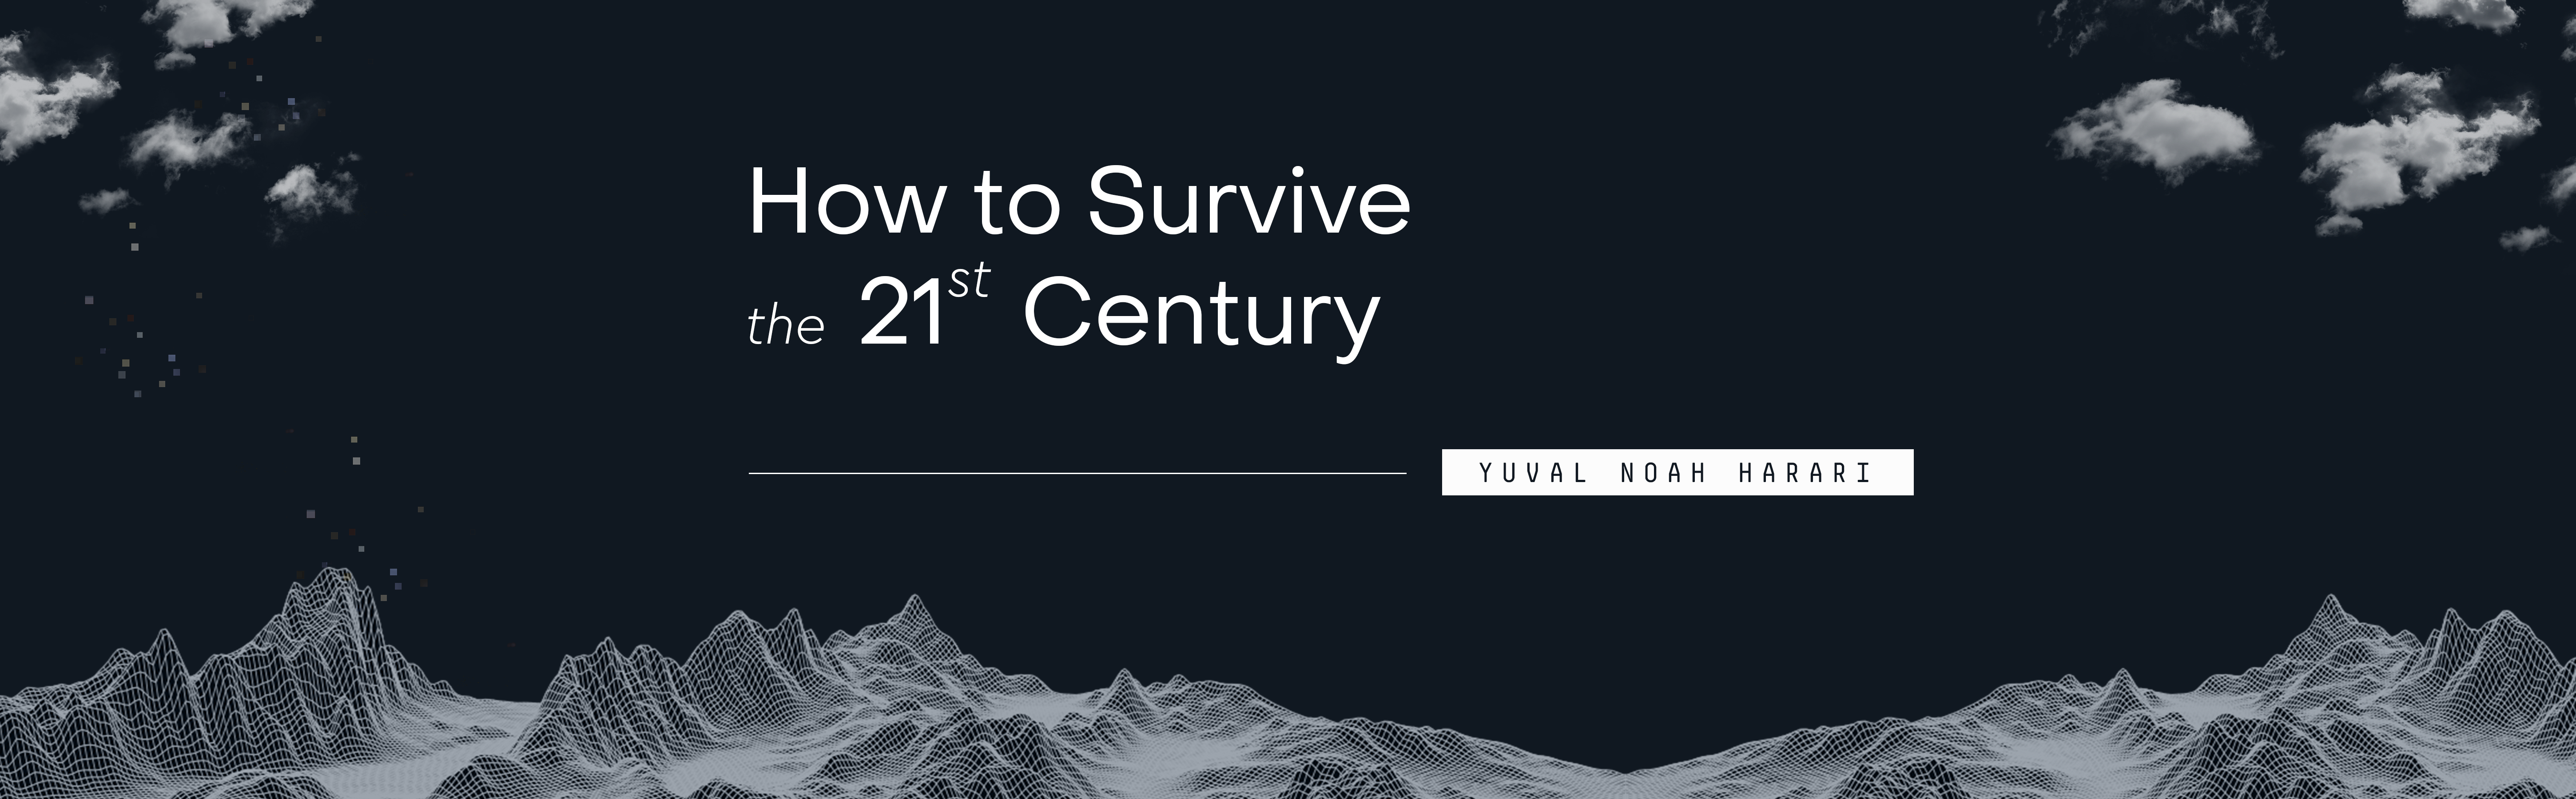 How to survive the 21st century.